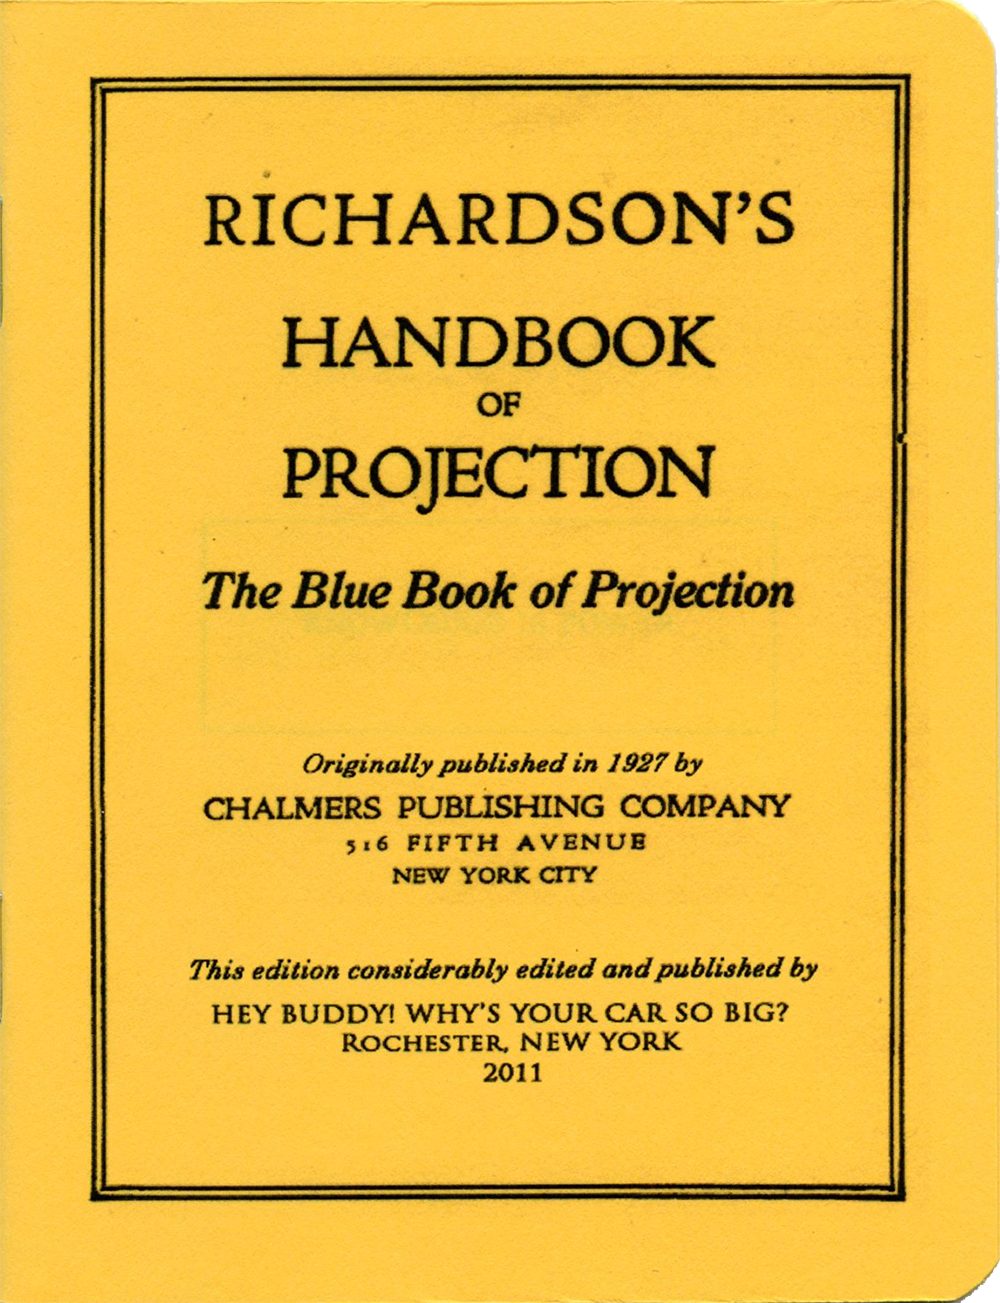 Image of Richardson's Blue Book of Projection zine